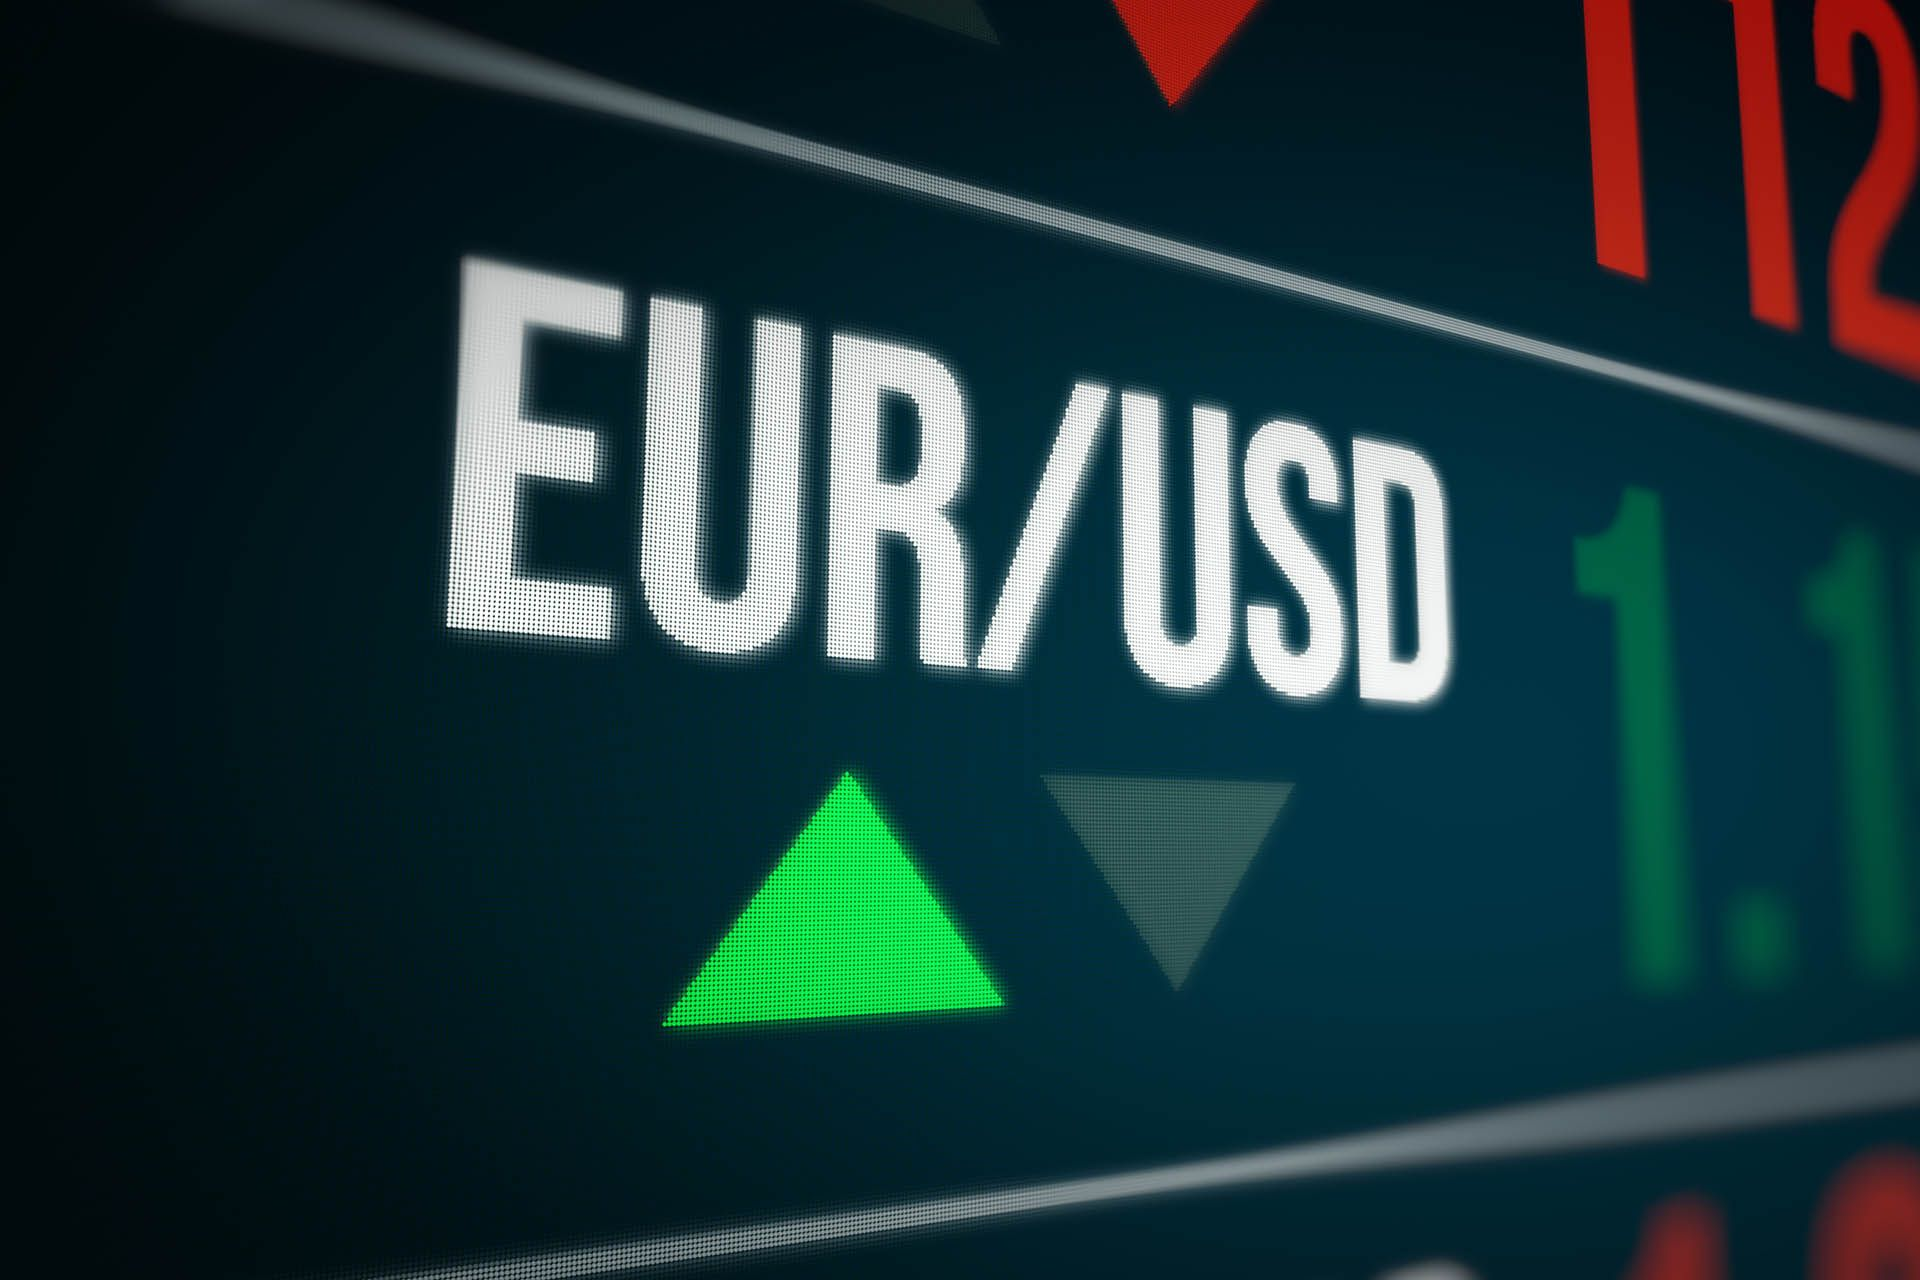 July, 17 - EUR/USD is up smalls and trades closer to the 1.14 mark